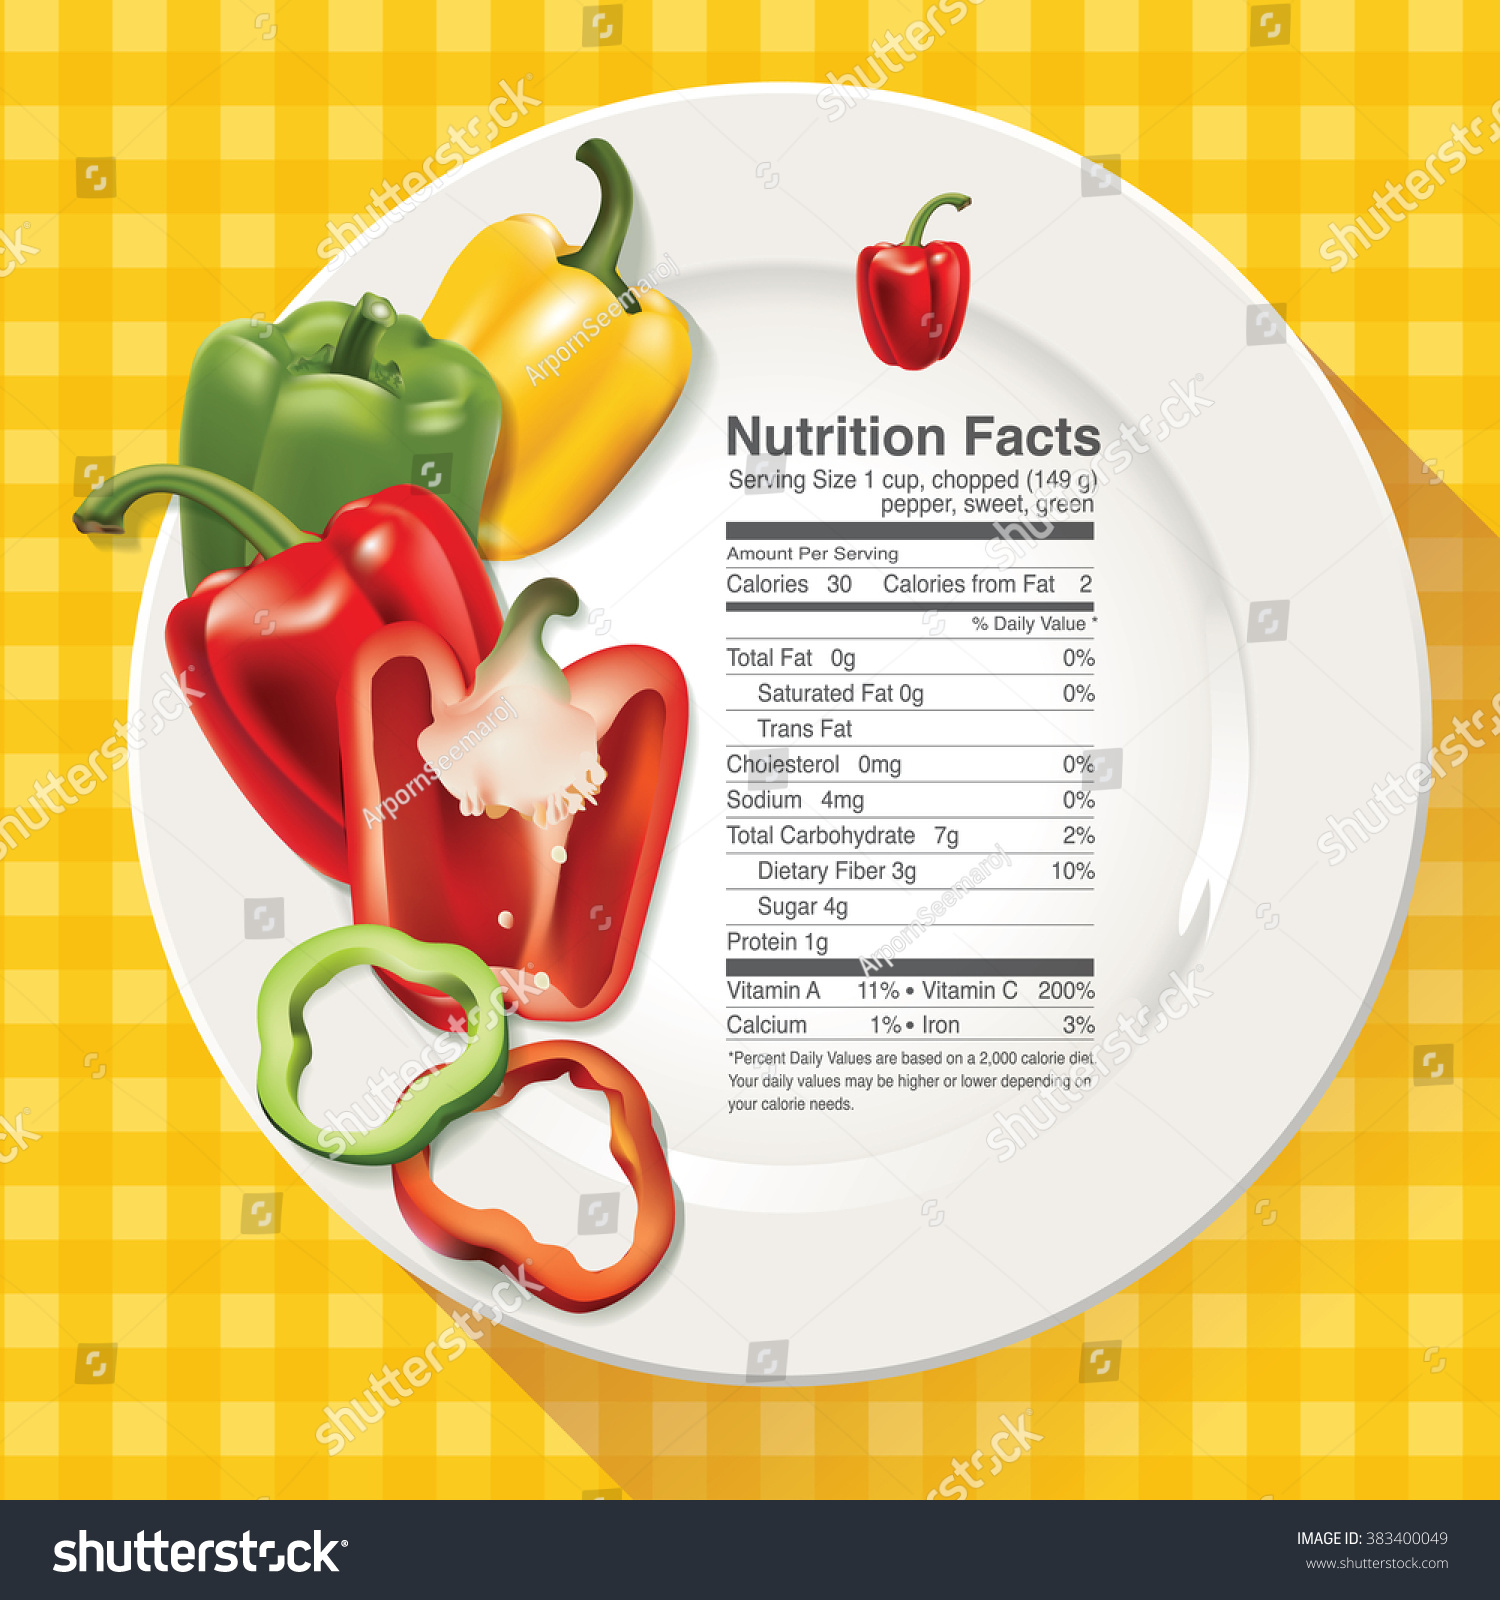 vector nutrition facts red yellow green stock vector (royalty free